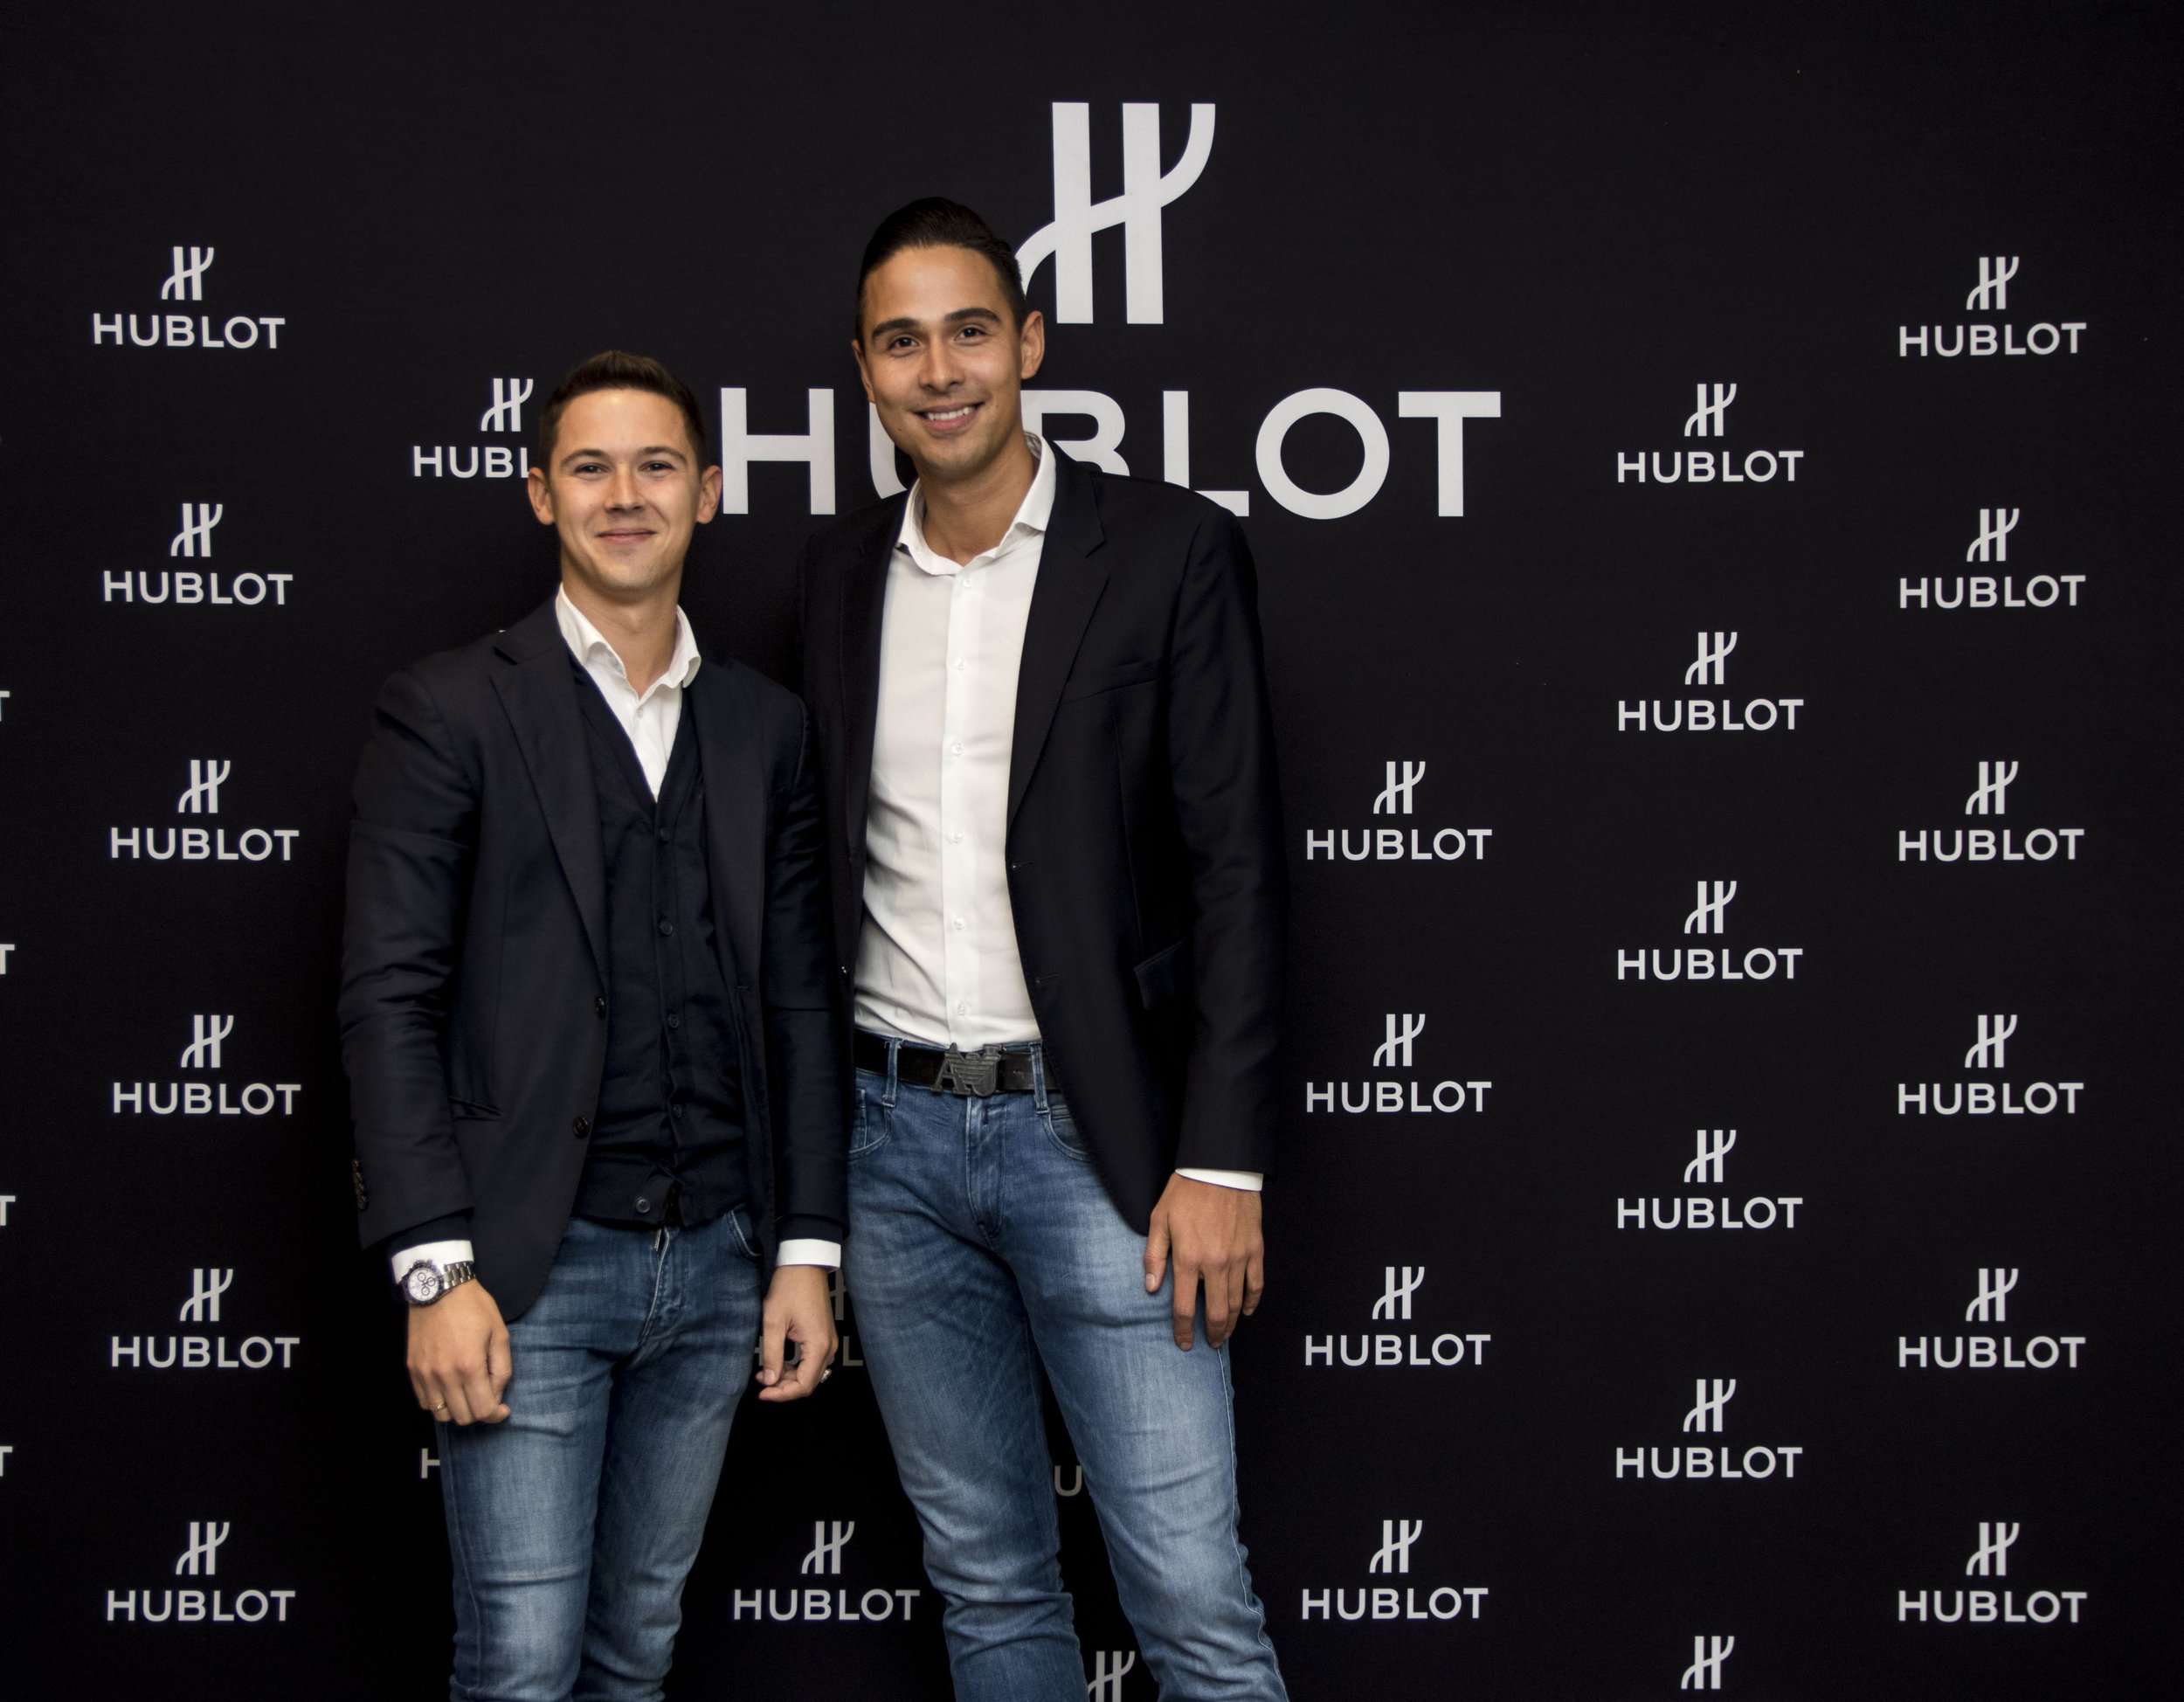 luxurygroupswitzerland_marcferrero_hublot_web041.jpg